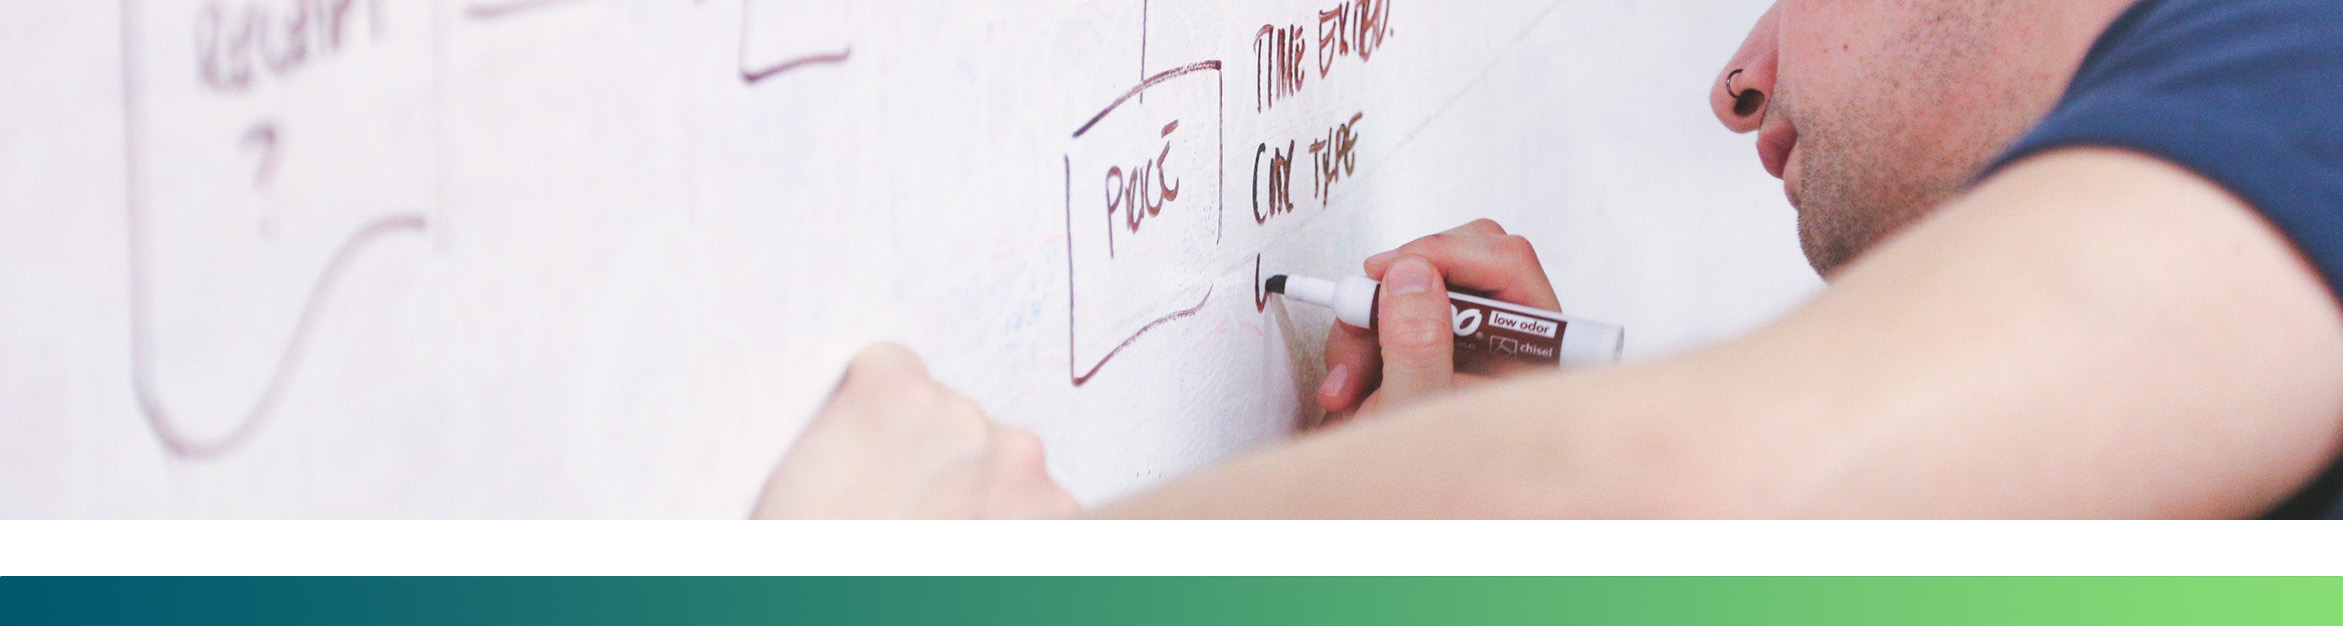 planning-whiteboard-solution